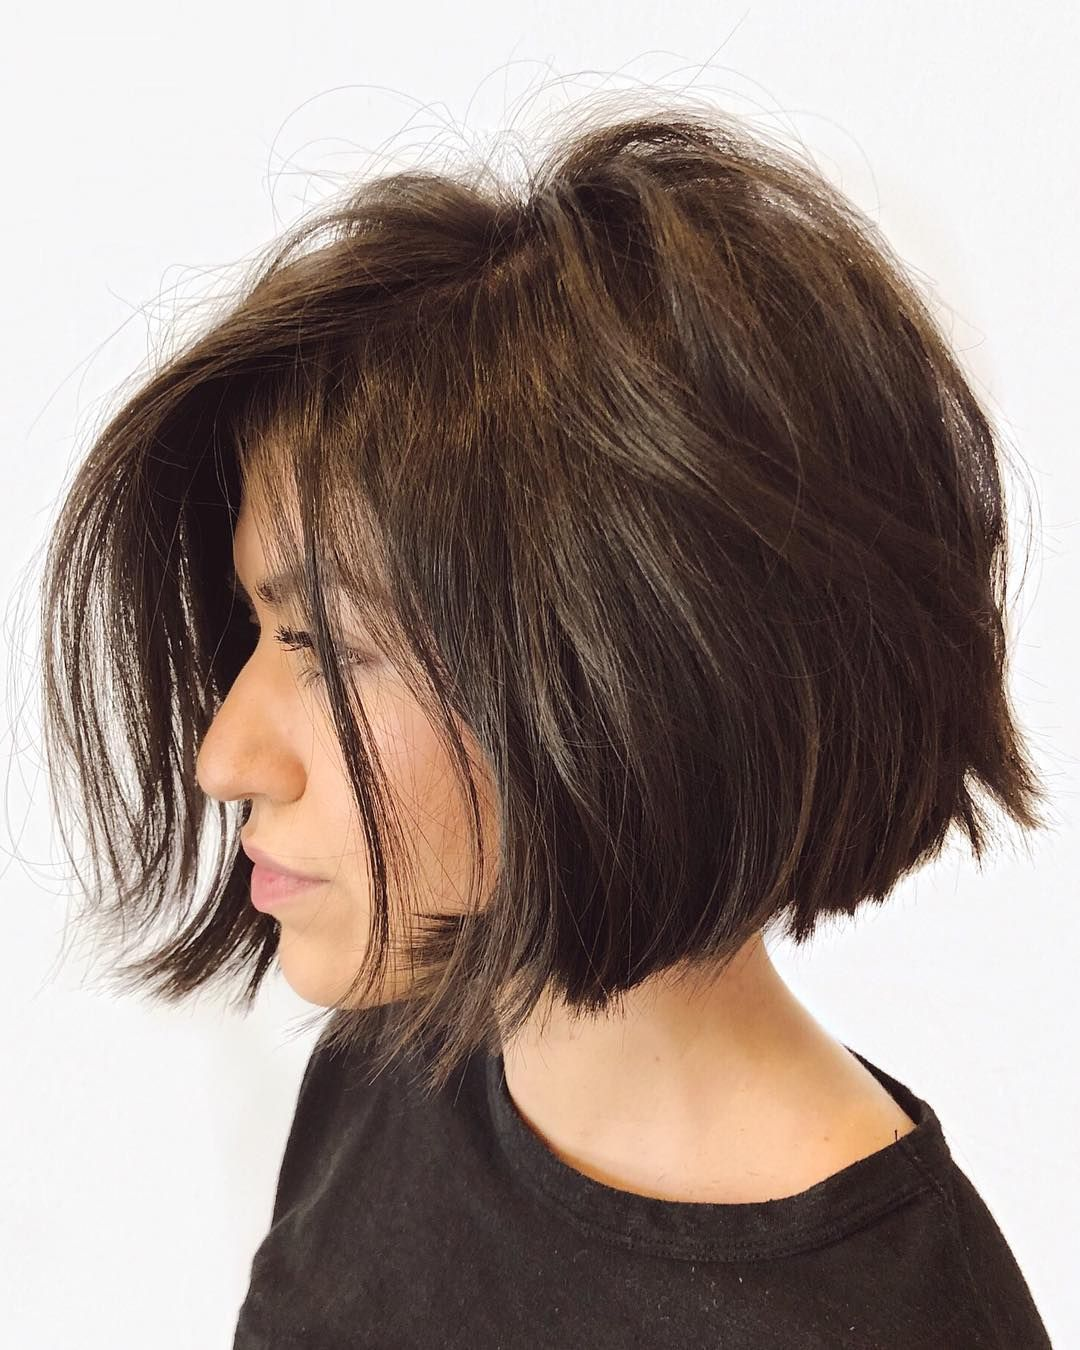 Fresh Bob For Alexusestellehair Back Was Undercut To Remove Bulk Allowing The Hair To Lay Better And R Hair Styles Short Hair Trends Haircut For Thick Hair